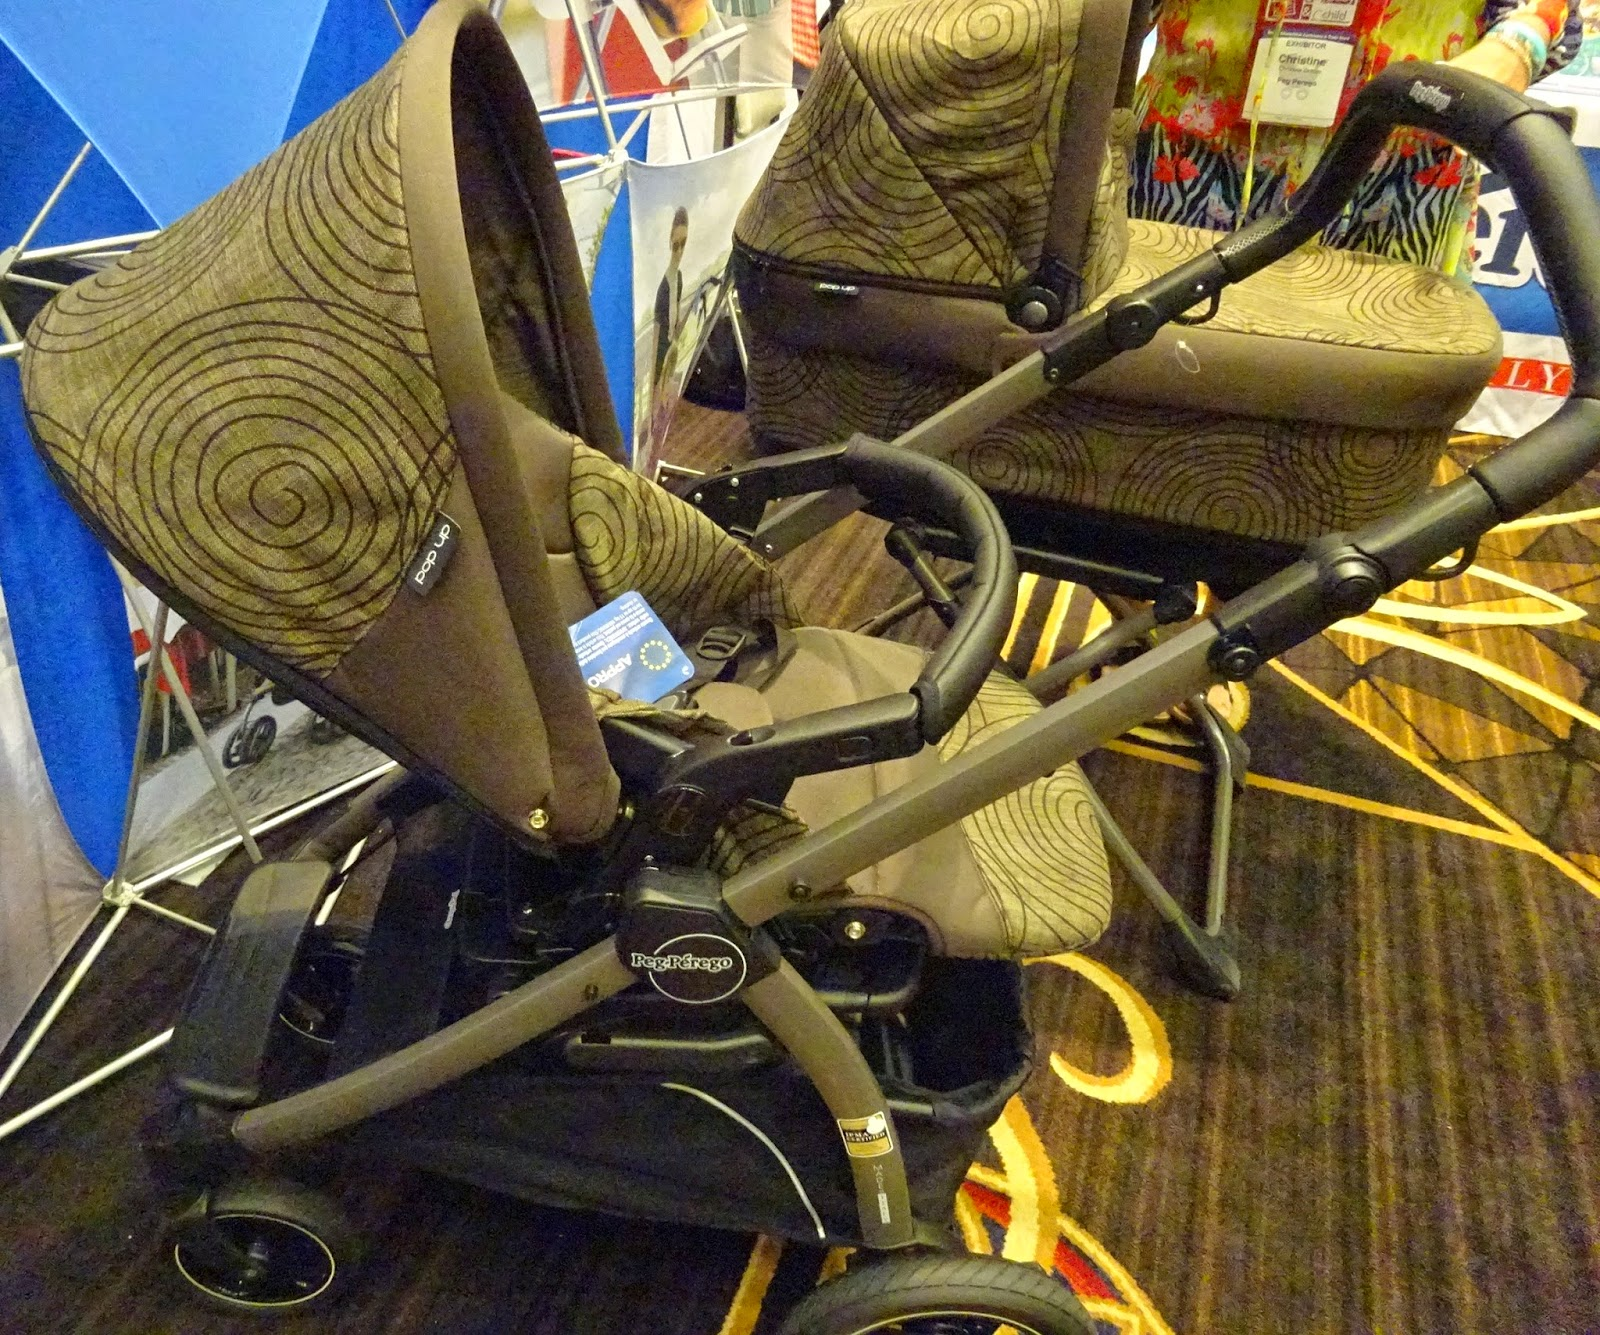 Komfort Buggy Book Von Peg Perego Strollerqueenreviews May 2015